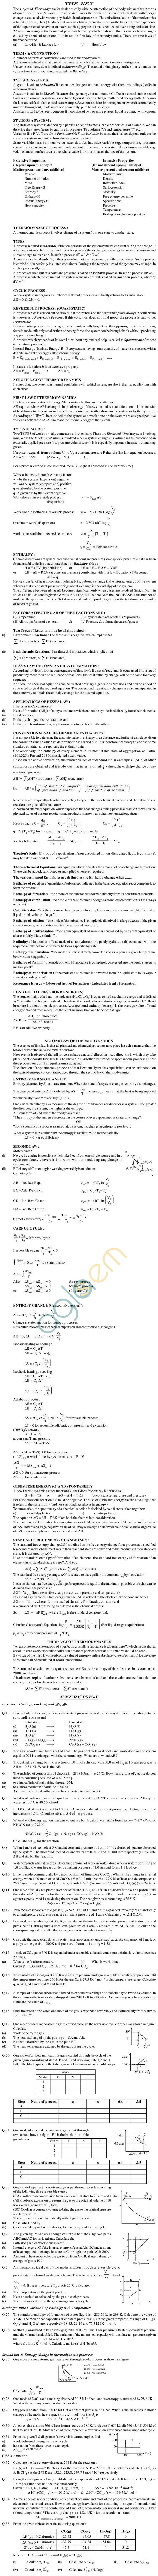 Chemistry Study Material - Chapter 8